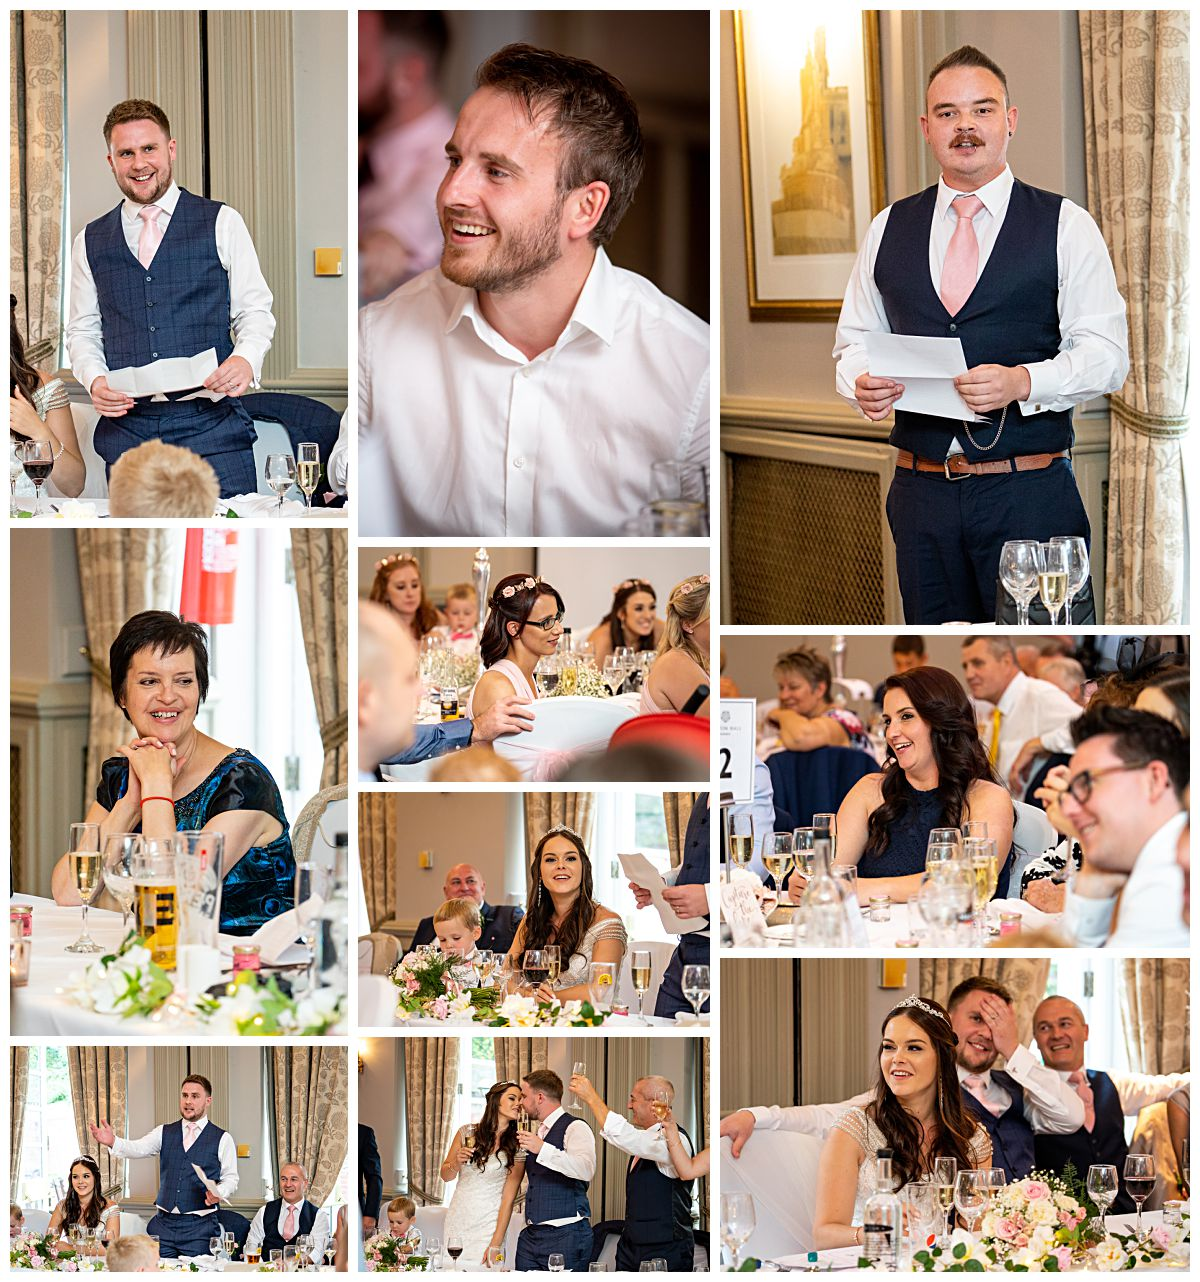 Professional and affordable Wedding Photographer in Pontefract, Rothwell and Leeds, Oulton Hall